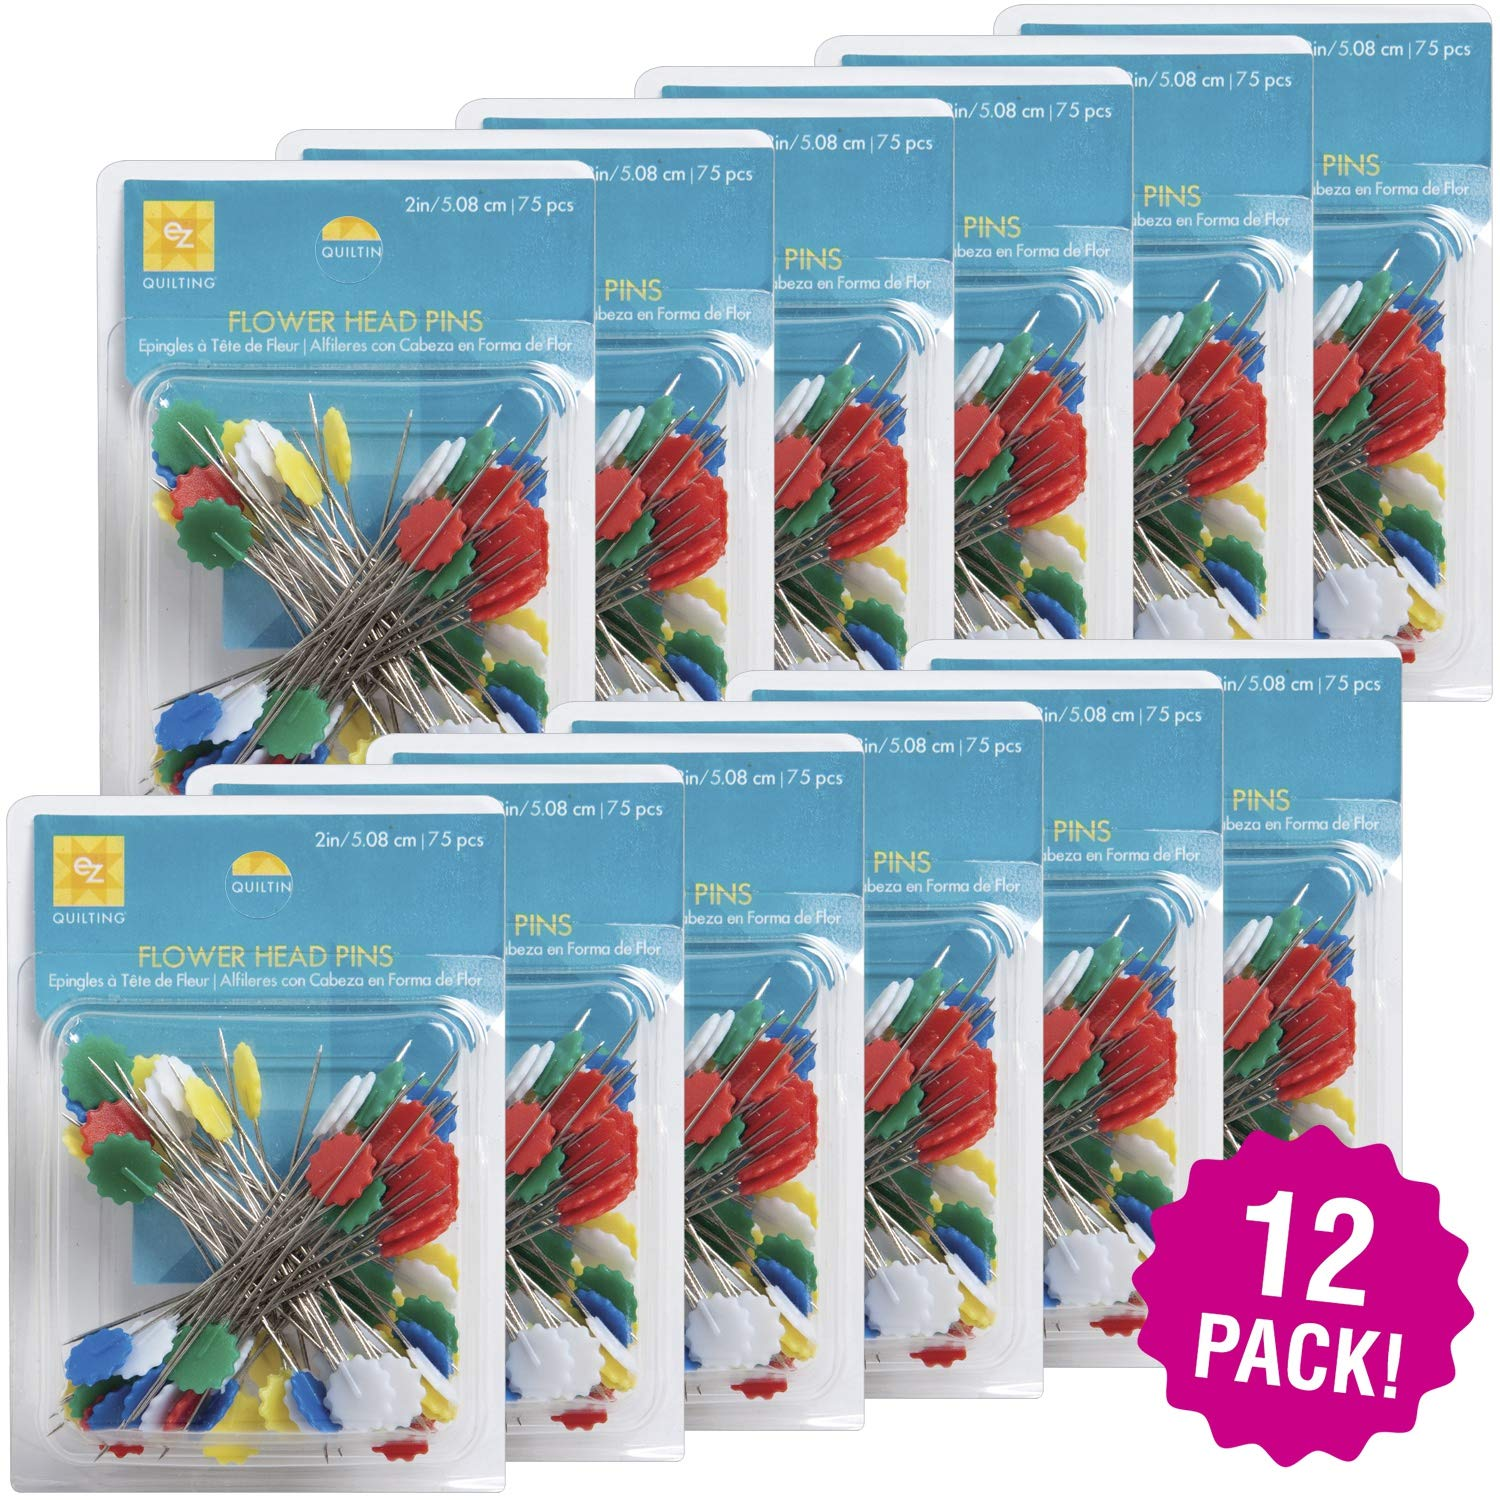 EZ Quilting 96879 Flower Head Pins 12/Pk 32-75 Count, Multipack, Size 32 75pcs Pack by EZQuilting